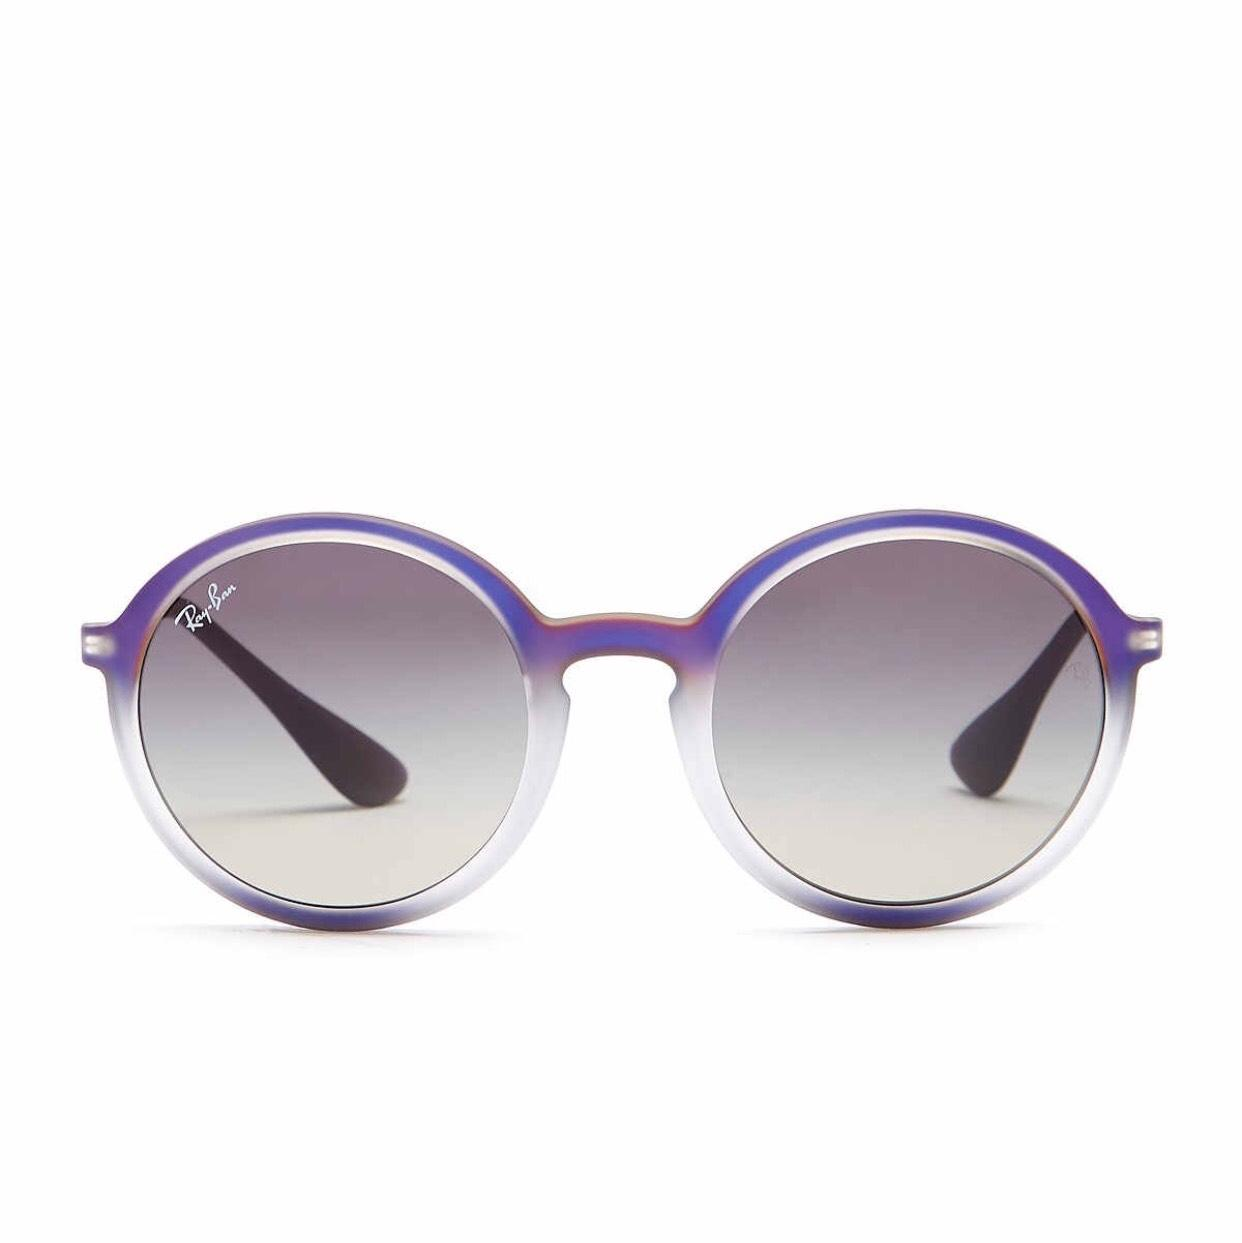 rayban sunglass frames  Ray-Ban Sunglasses \u0026 Accessories on Sale - Up to 80% off at Tradesy